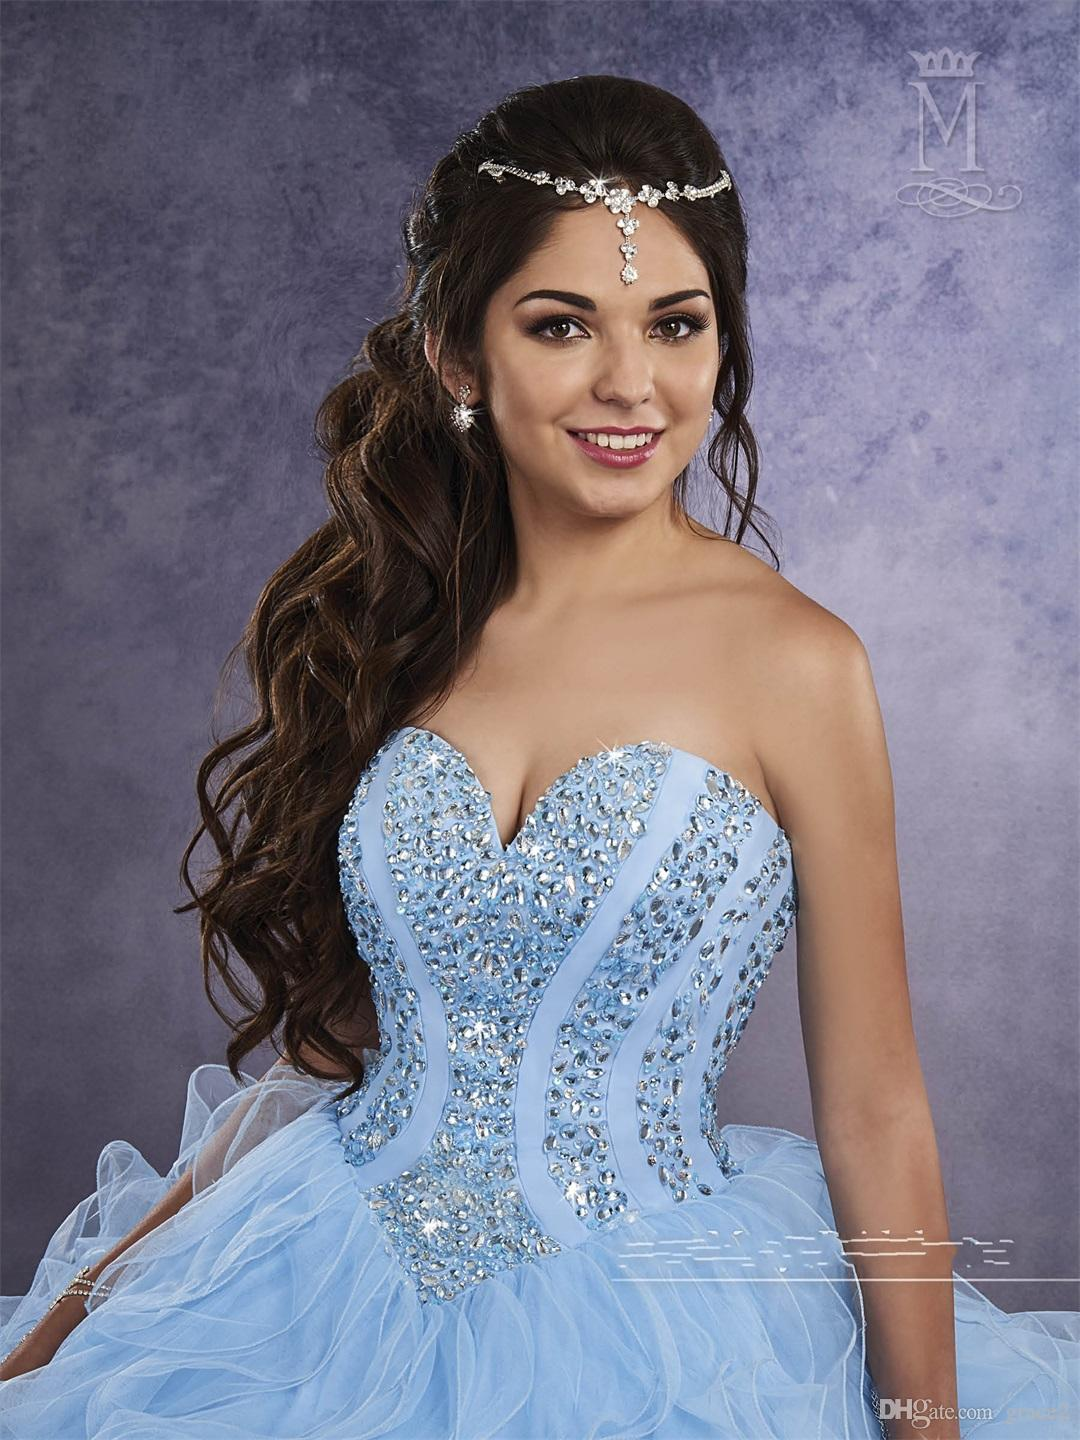 Light Blue Quinceanera Dresses 2017 Mary's with Sheer Bolero and Beaded Basque Waistline Ruffles Peach Tulle Masquerade Ball Gowns Lace Up